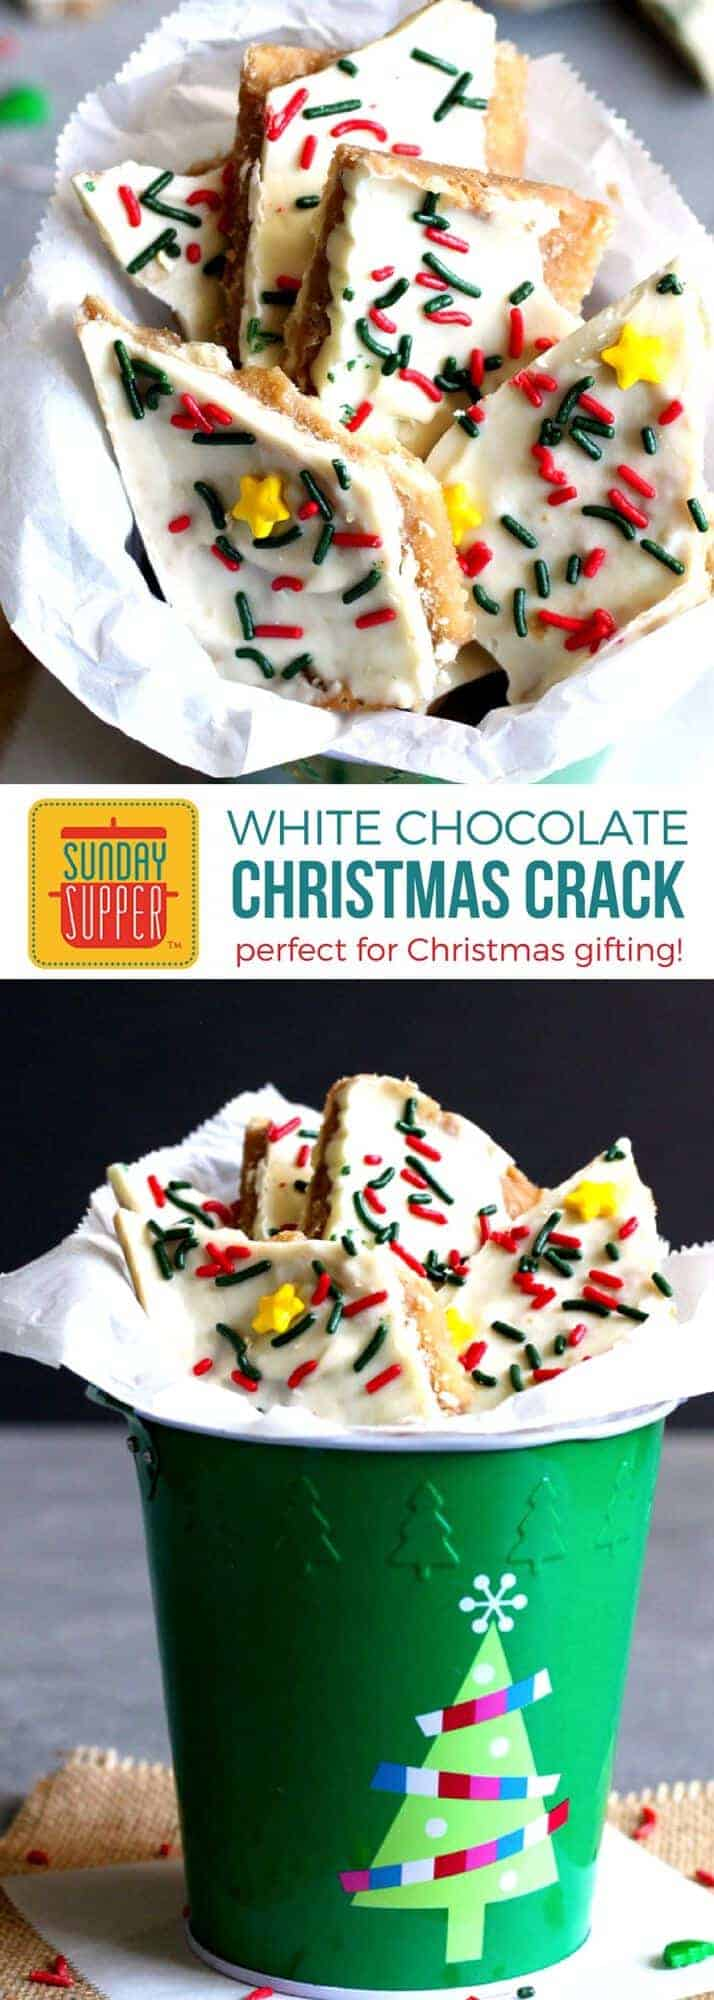 Our White Chocolate Christmas Crack Recipe is the EASIEST and most addicting treat you will make this holiday season. These treats will pack nicely in a little goodie bag tied up with a pretty bow, PERFECT for Homemade Holiday Food Gifts for Christmas gifting or adding to your list of Buffet Menu Ideas for a quick dessert option! Kids and adults alike will LOVE this White Chocolate Christmas Crack!! #holidayrecipes #christmasrecipes #foodgift #easyrecipe #SundaySupper